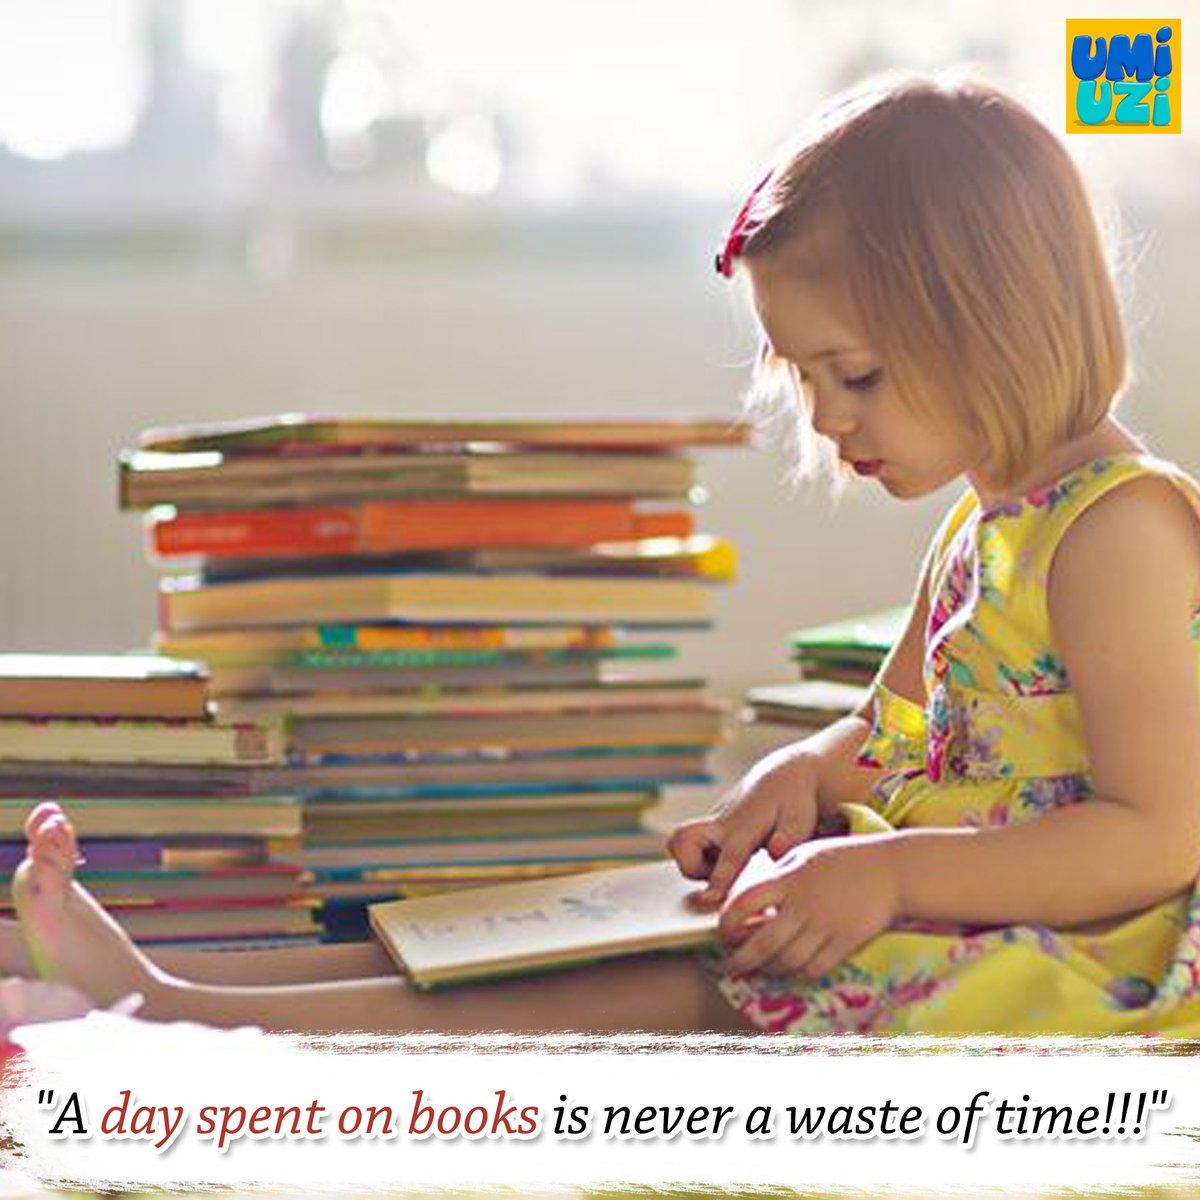 A #day spent on #books is never a waste of #time!! #motivational #motivationalquote #motivationalspeaker  #motivated<br>http://pic.twitter.com/oyUkDizsDy